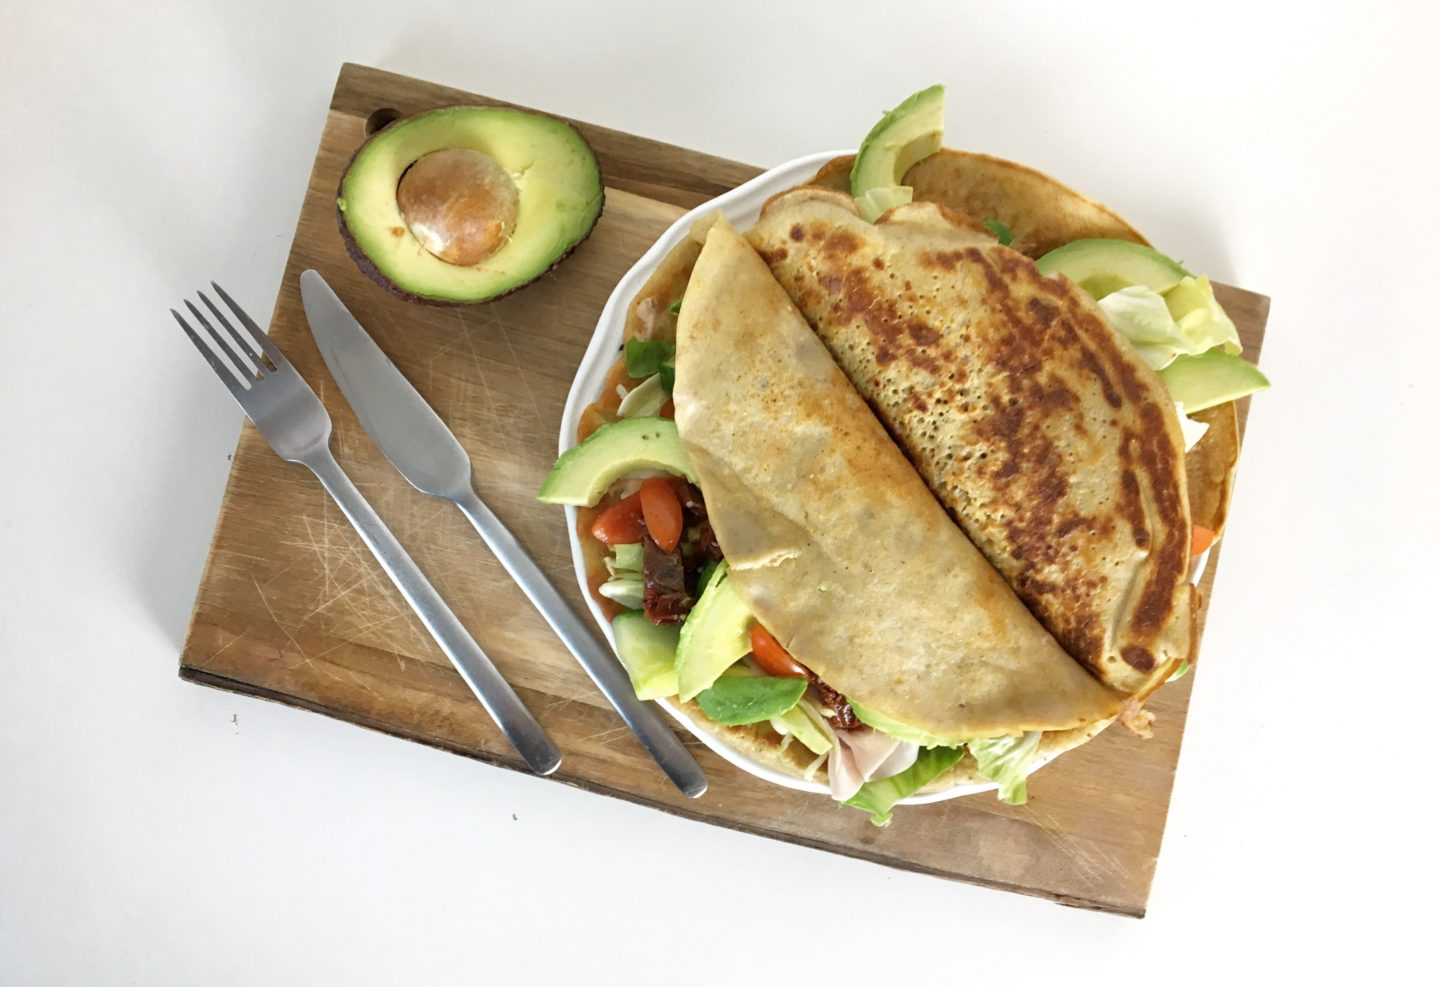 Bunte Lunch-Wraps